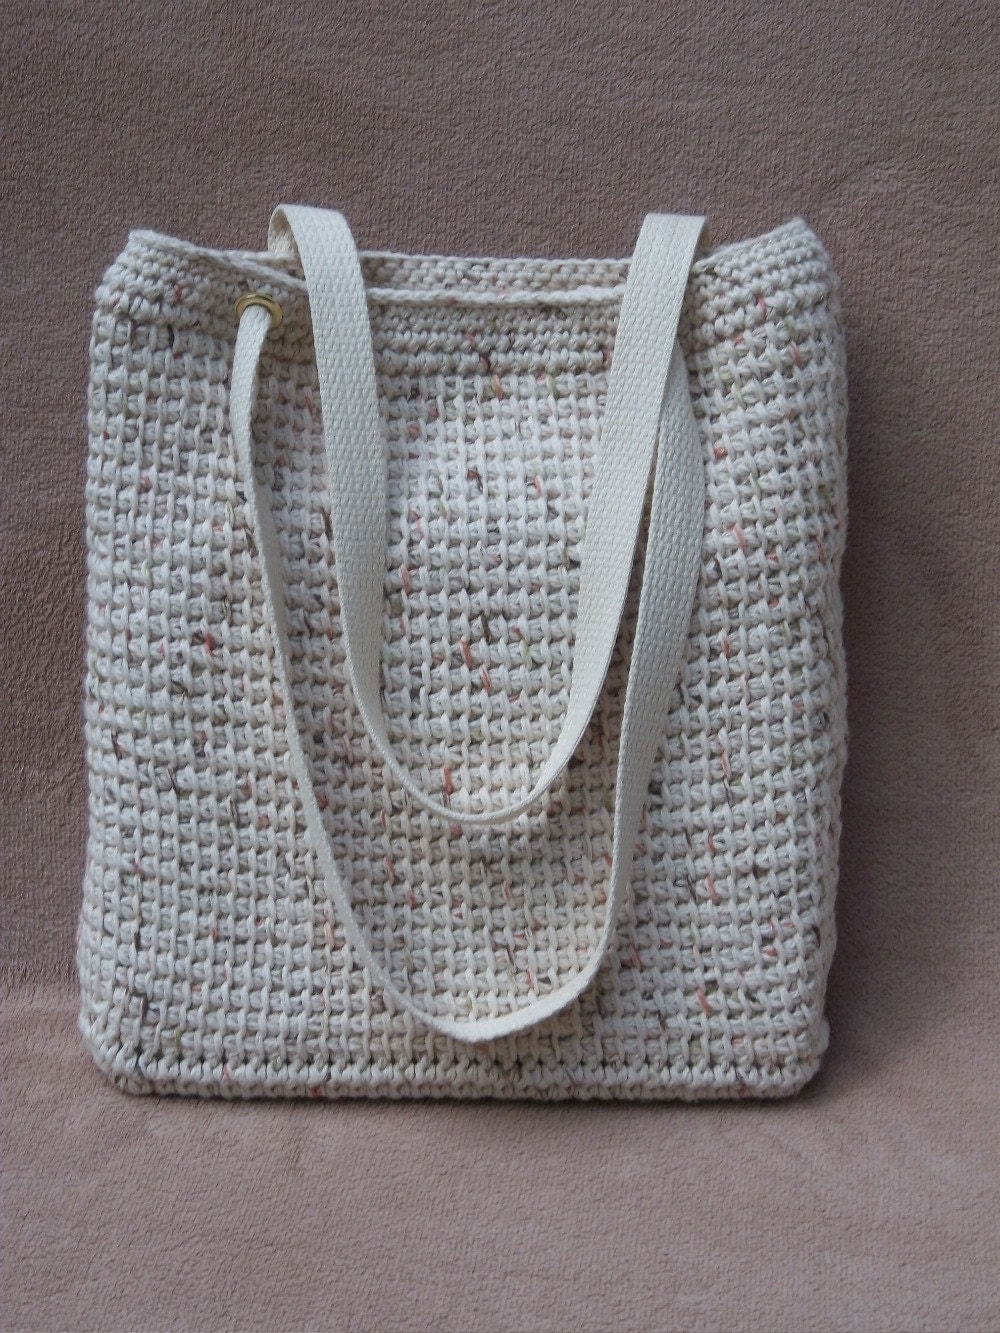 Large Bag Large Bag Beige Cotton Tunisian Crochet Tote Bag